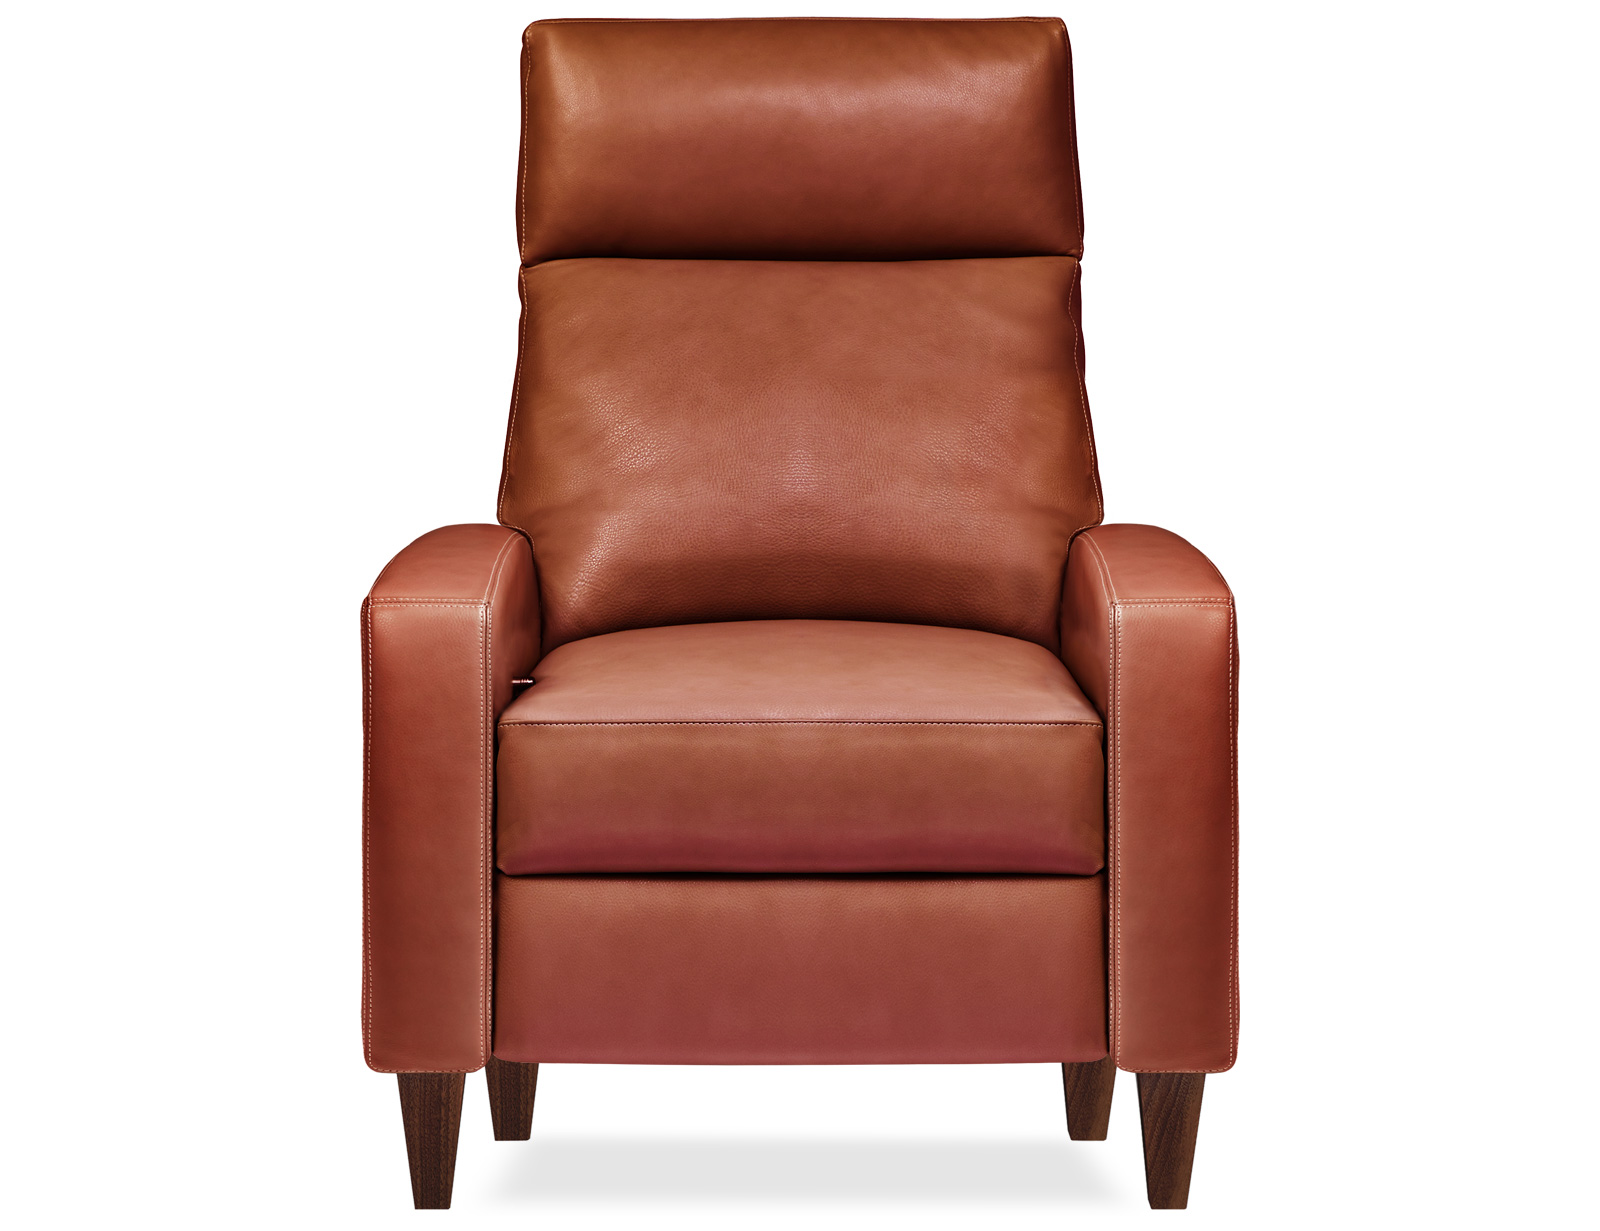 american leather dexter comfort recliner